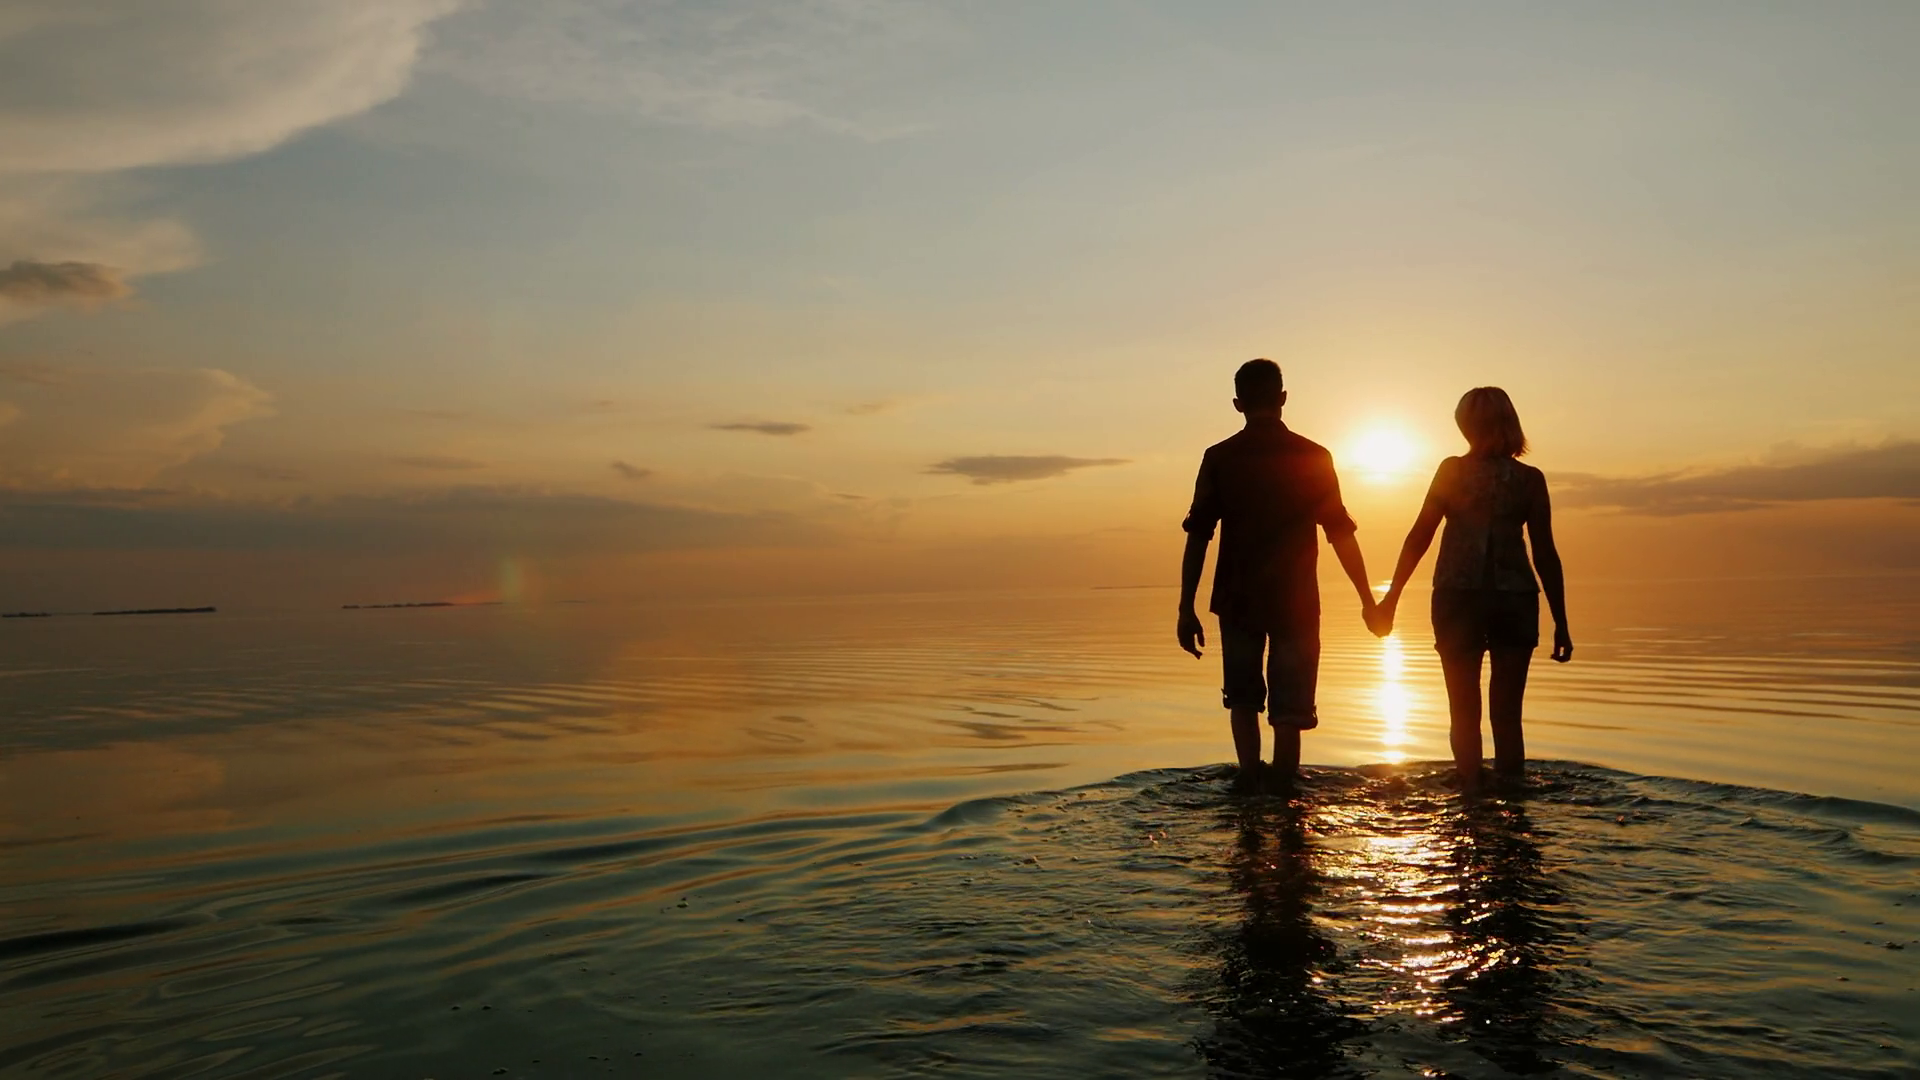 A man and a woman go to the sea at sunset, holding hands ...